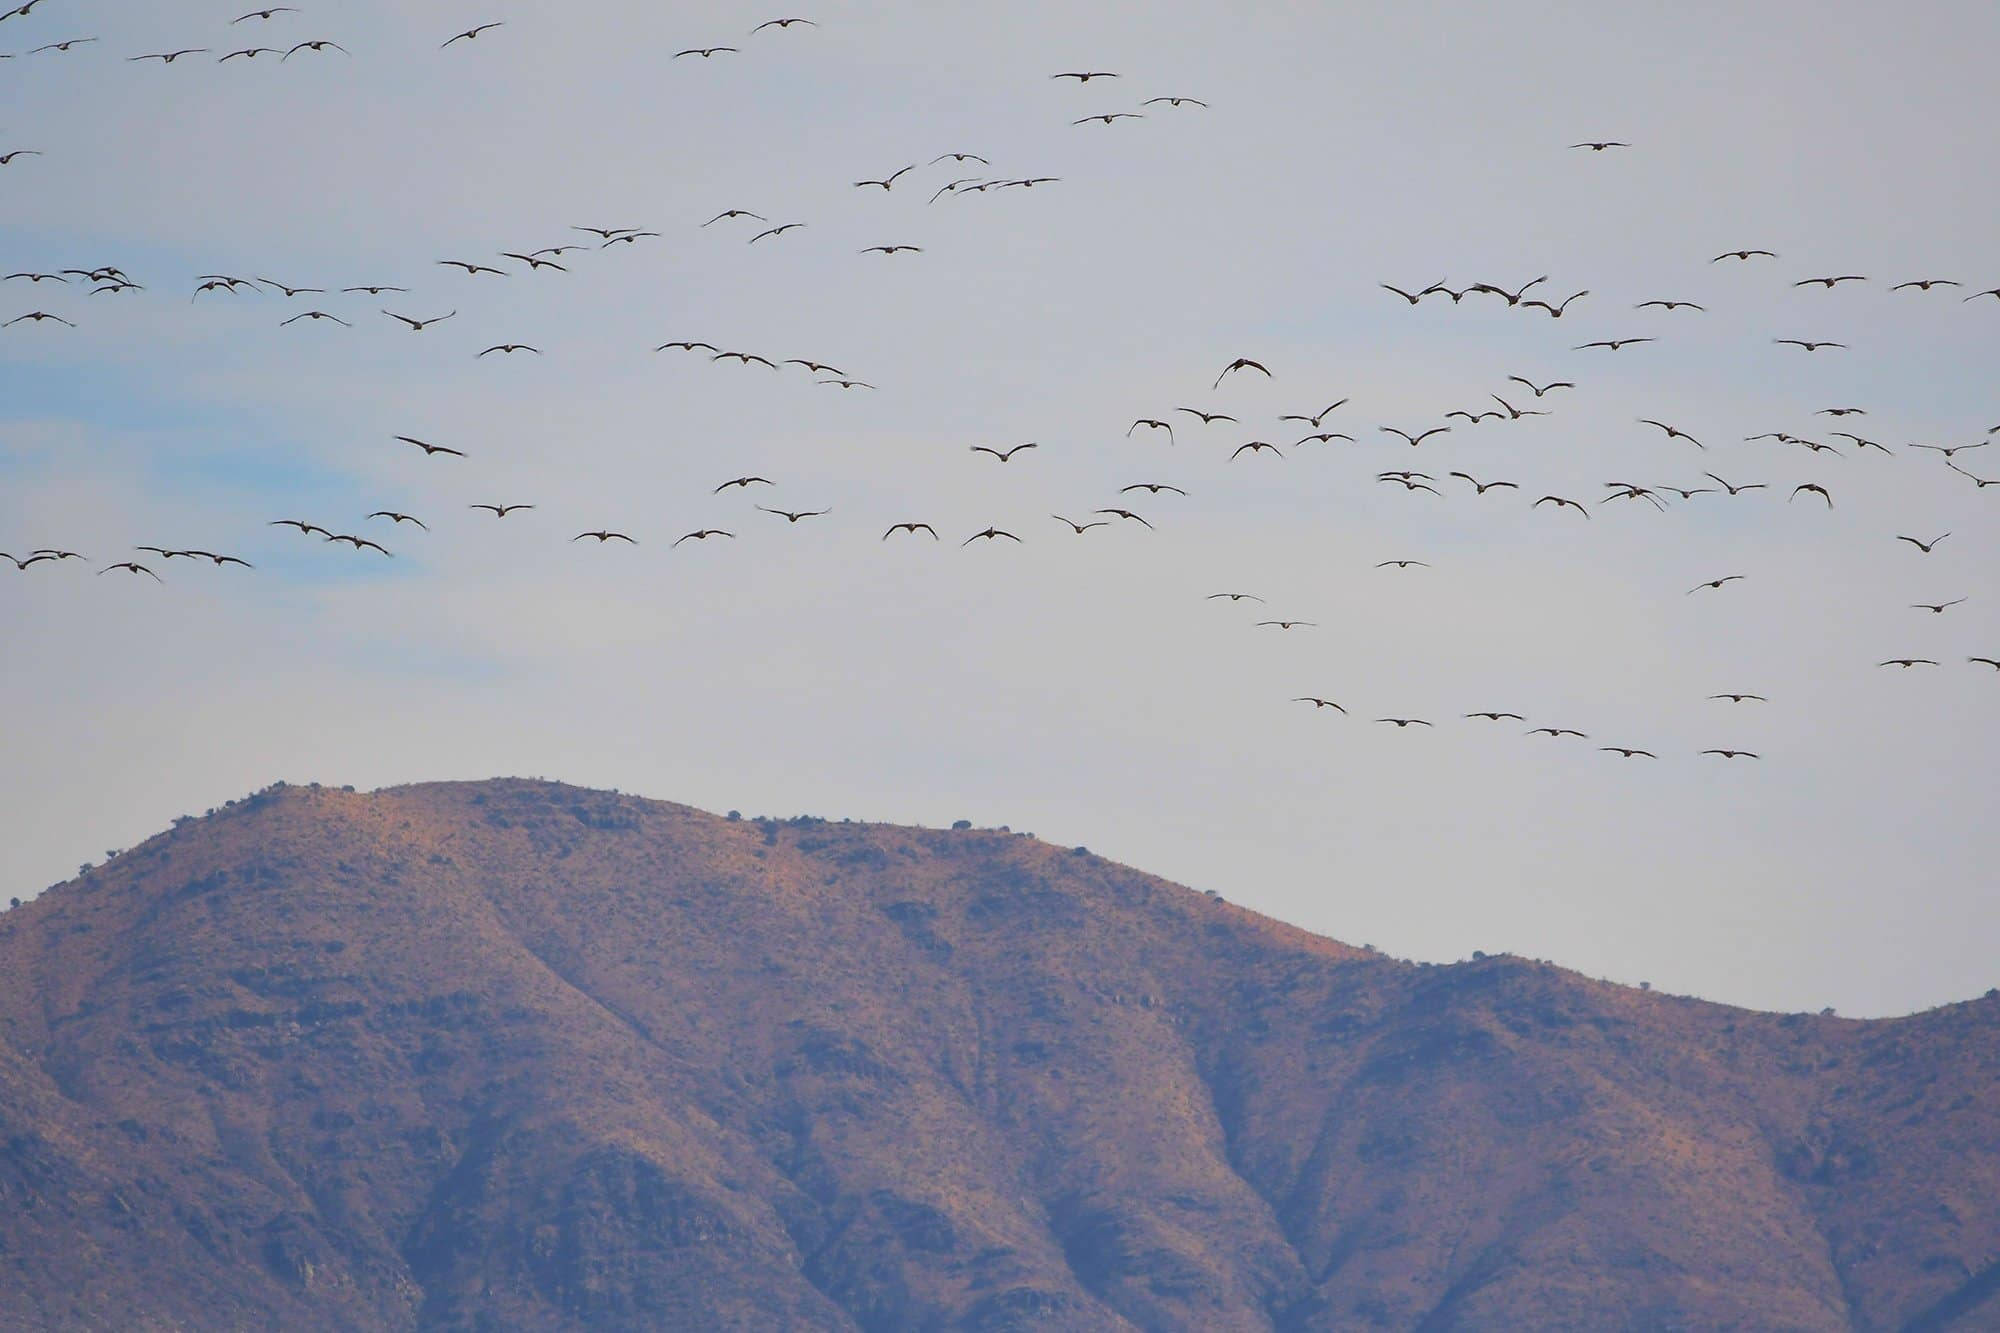 see the sights in southern Arizona: thousands of sandhill cranes arriving at whitewater draw